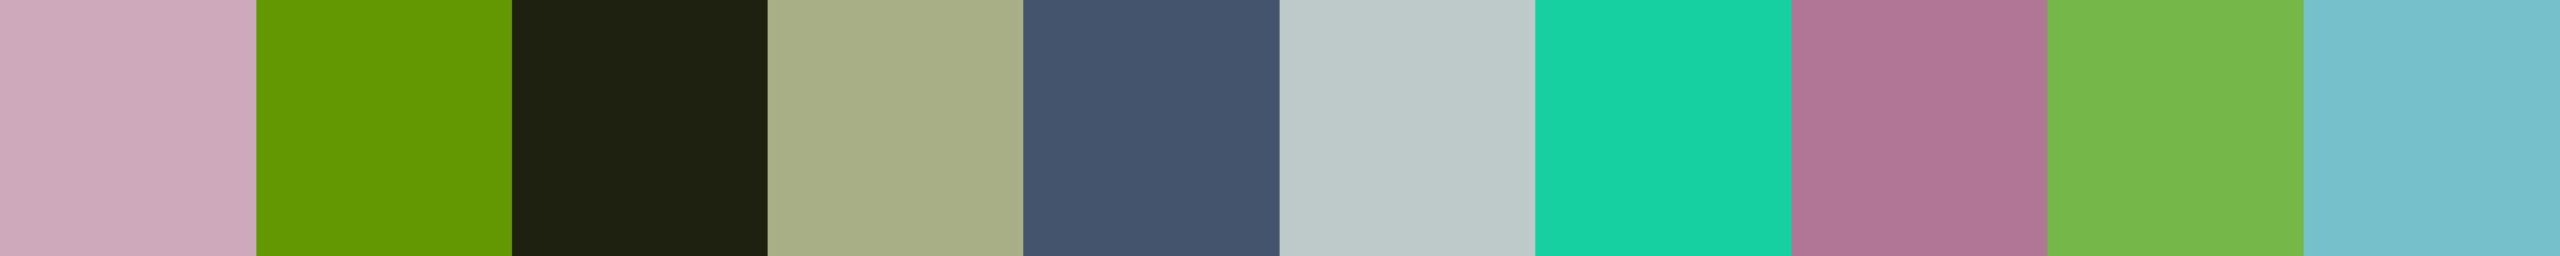 336 Gentomia Color Palette